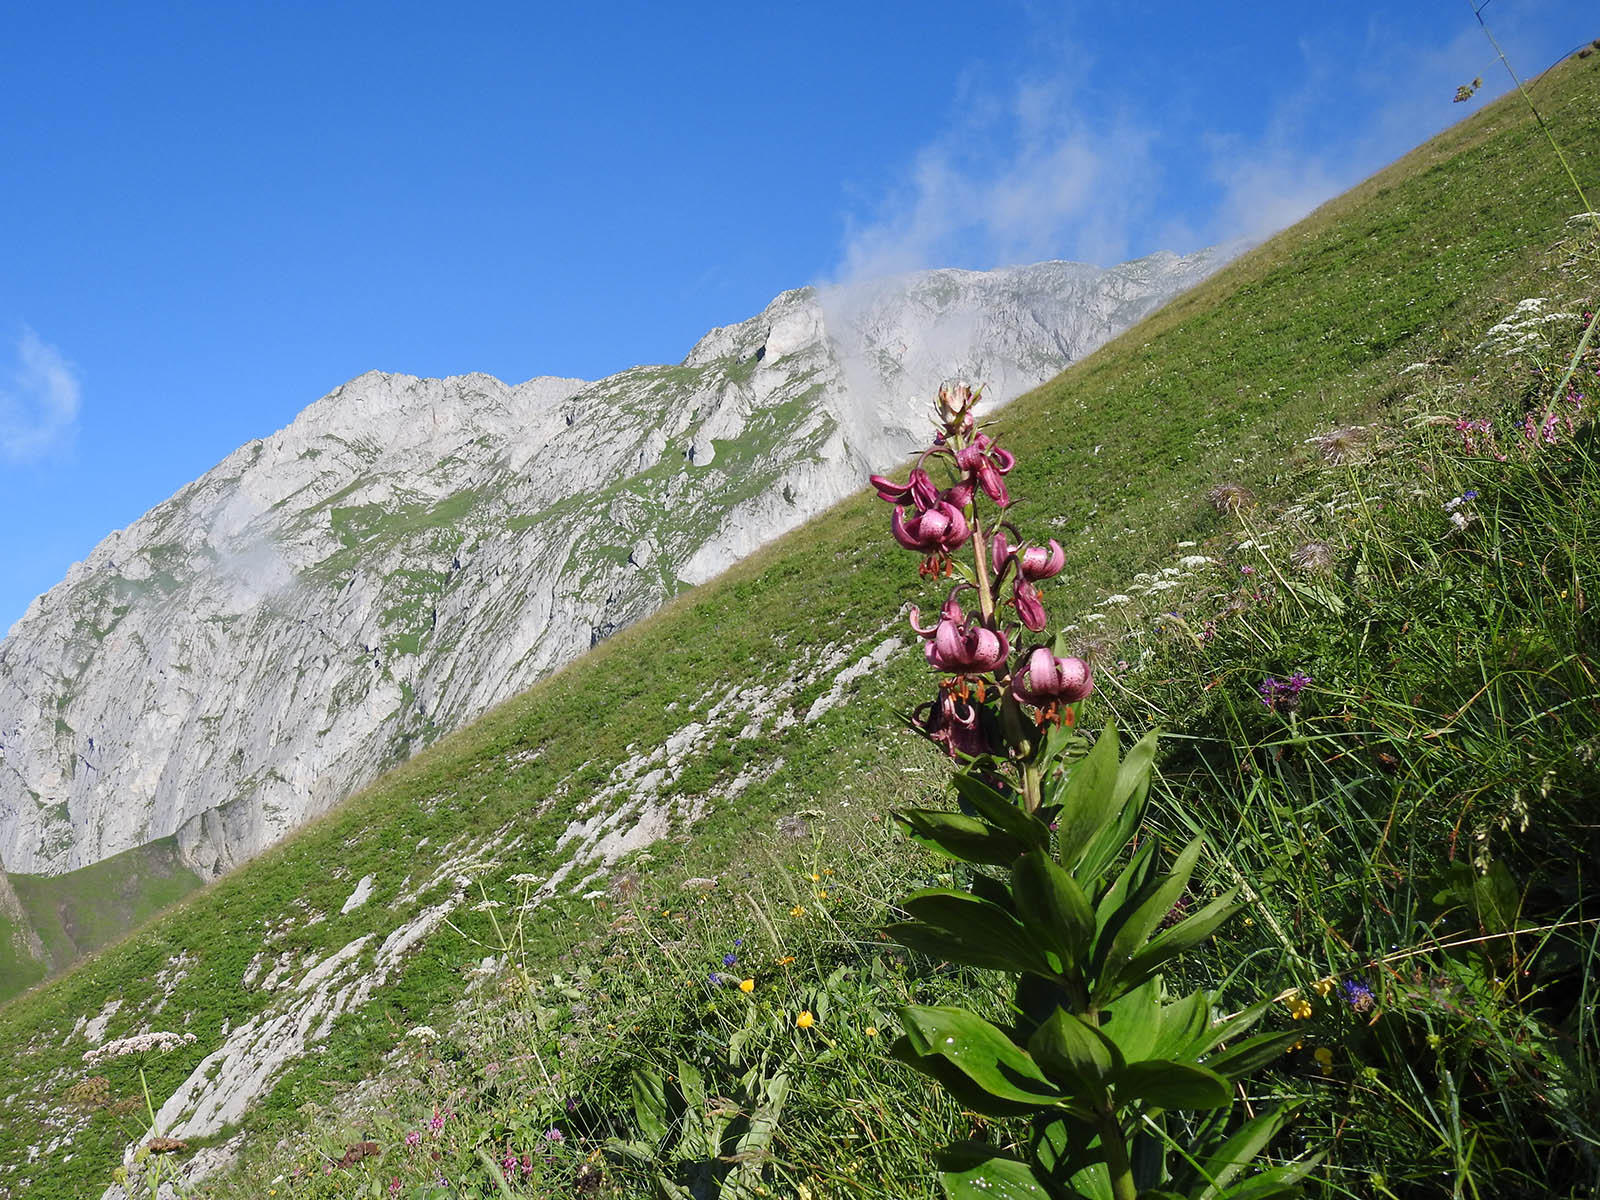 Wild Flower in the Mountain near Hotel Les Gentianettes, The Ori